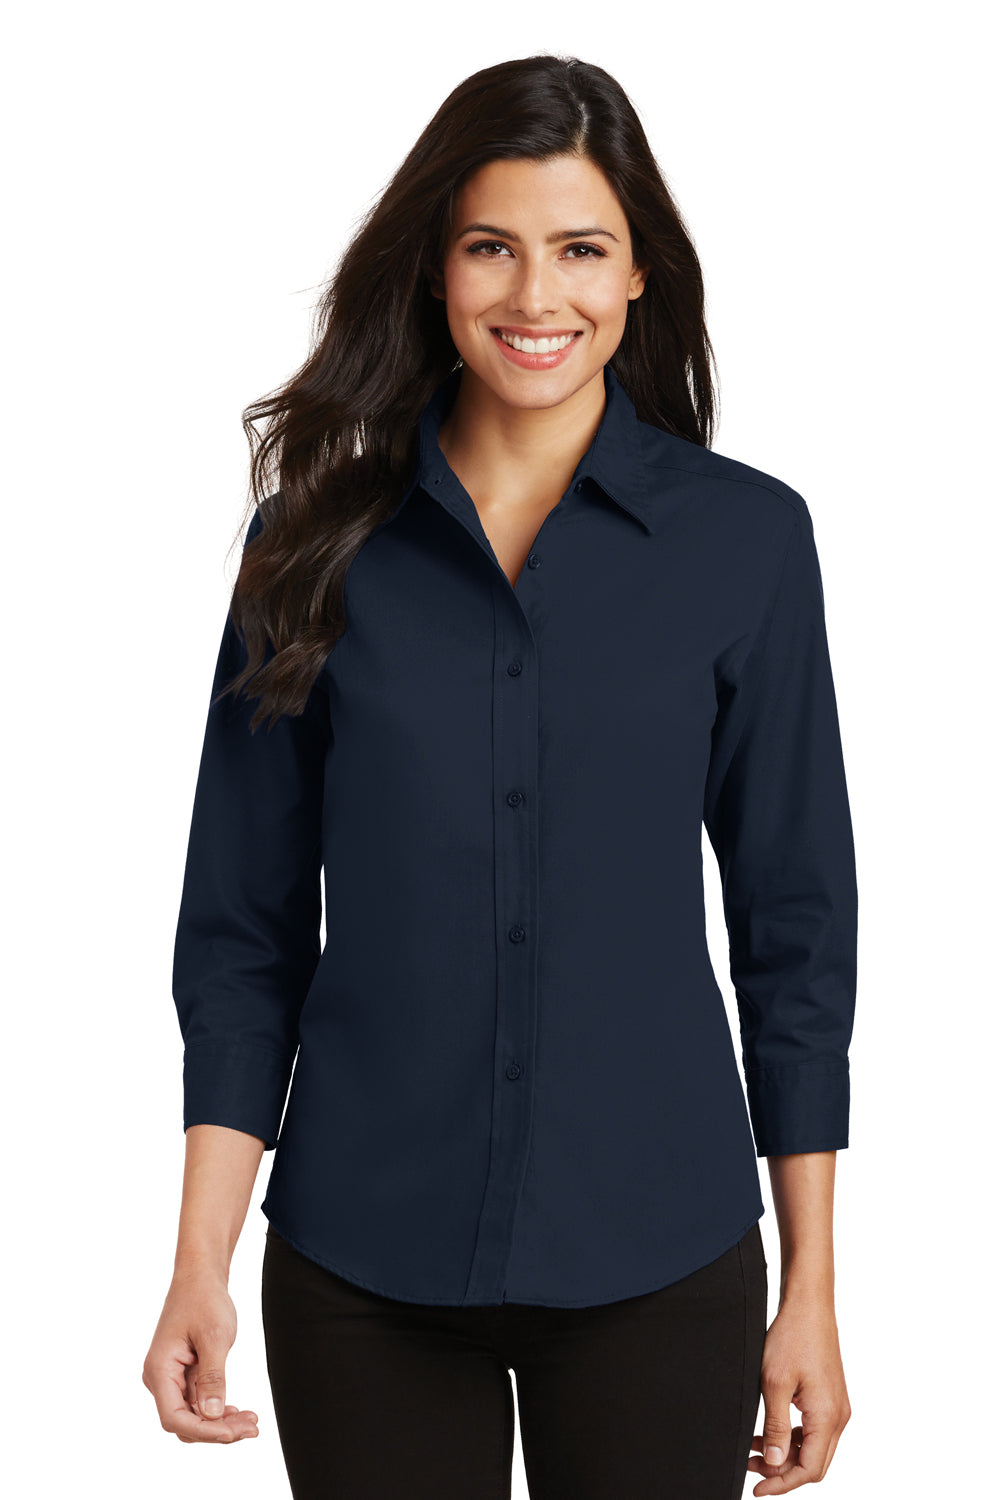 Port Authority Womens Easy Care Wrinkle Resistant 3/4 Sleeve Button Down Shirt - Navy Blue